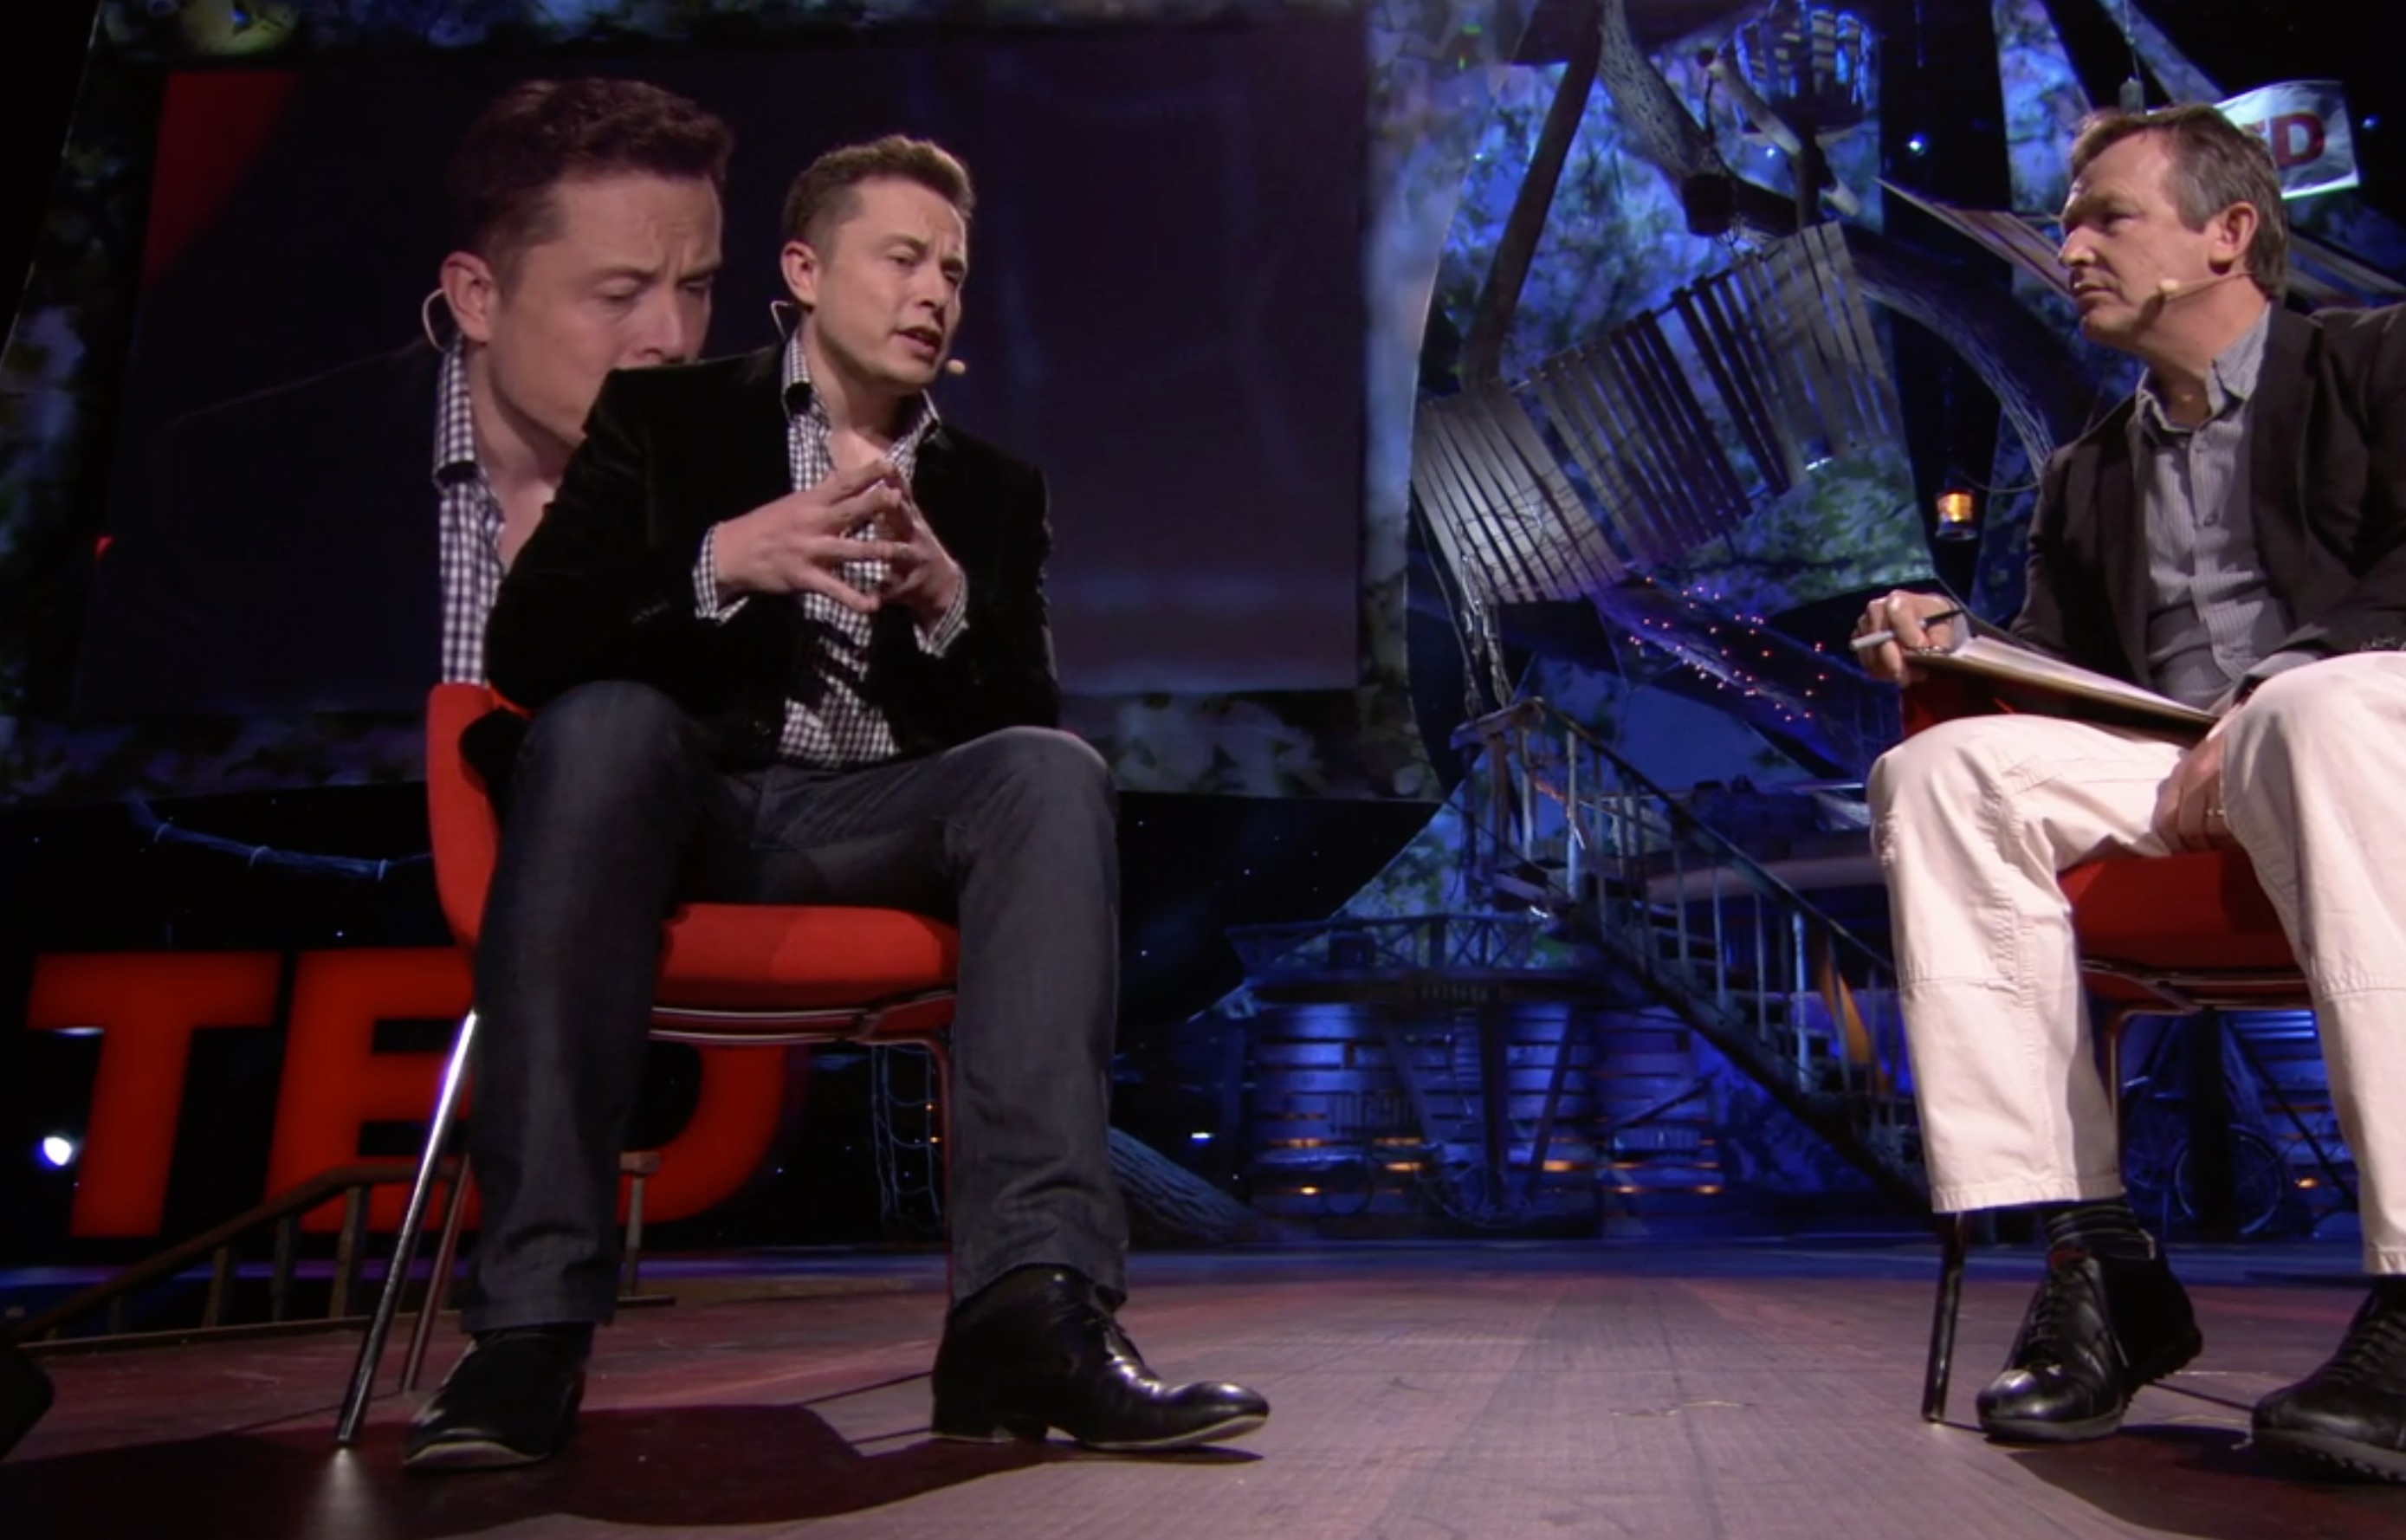 Elon-Musk-TED-Vancouver-Apr-28-future-us